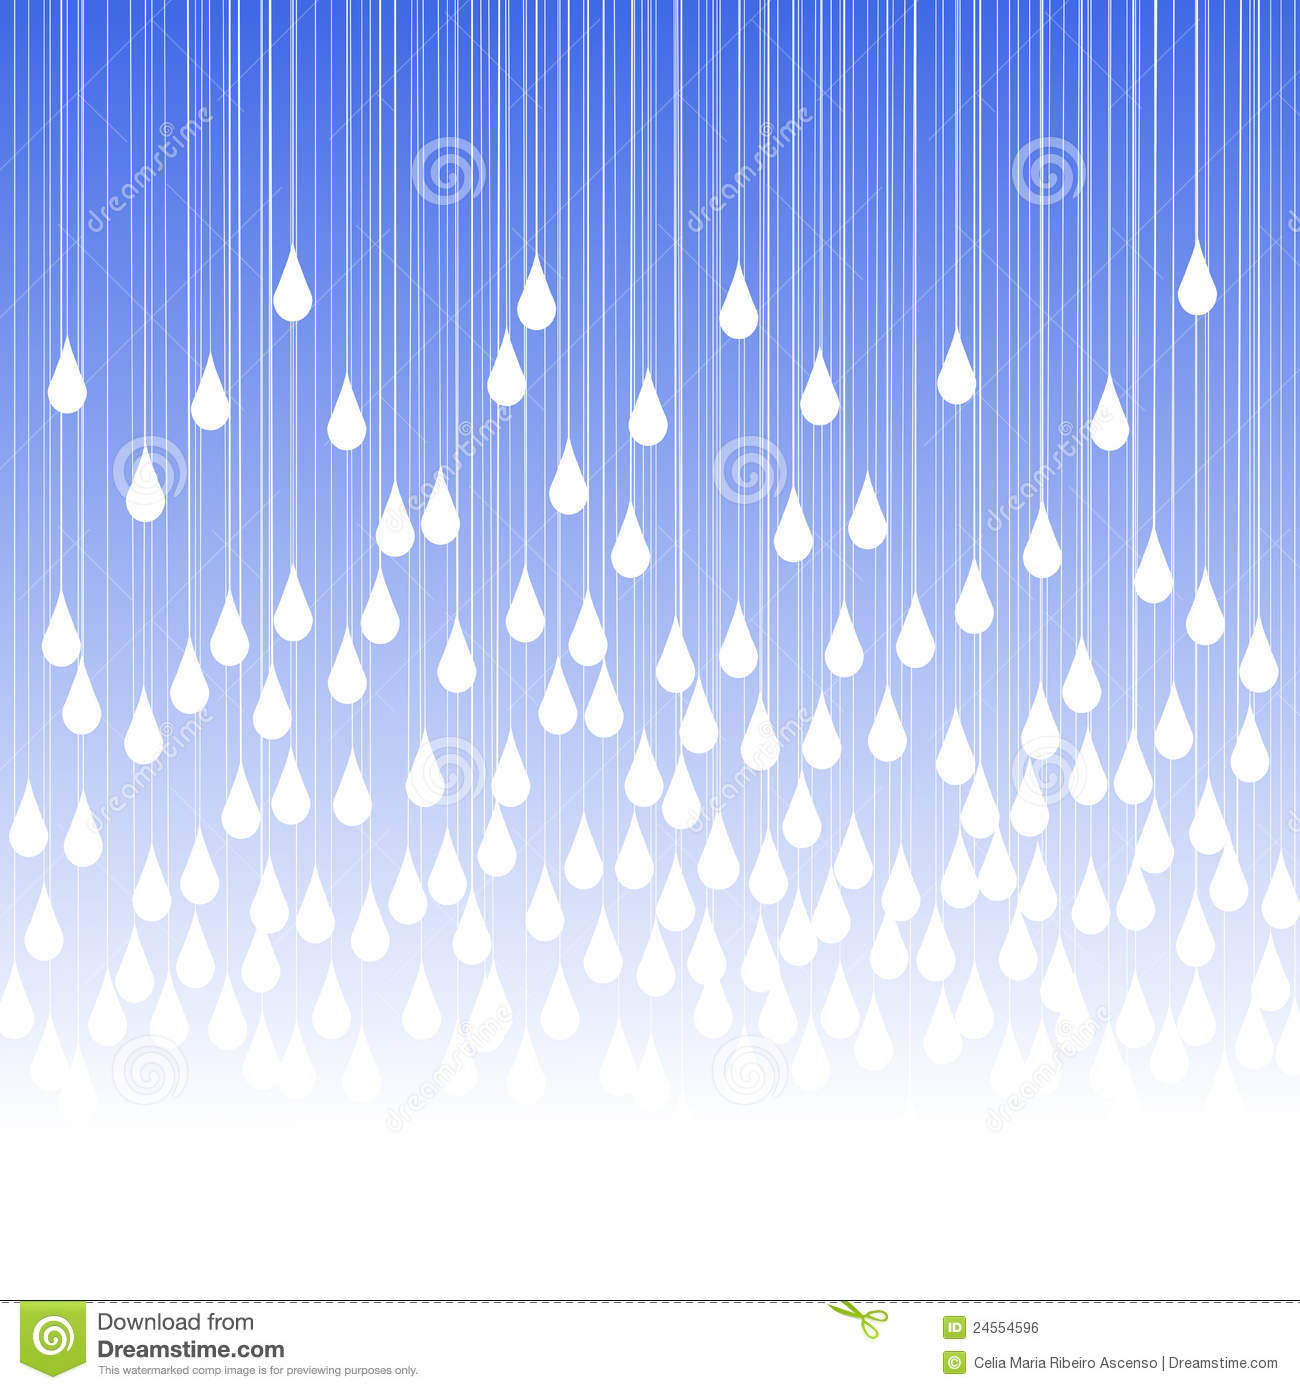 Raindrops Falling From The Sky Wallpaper Rain Drops And Fog Greeting Card Stock Illustration